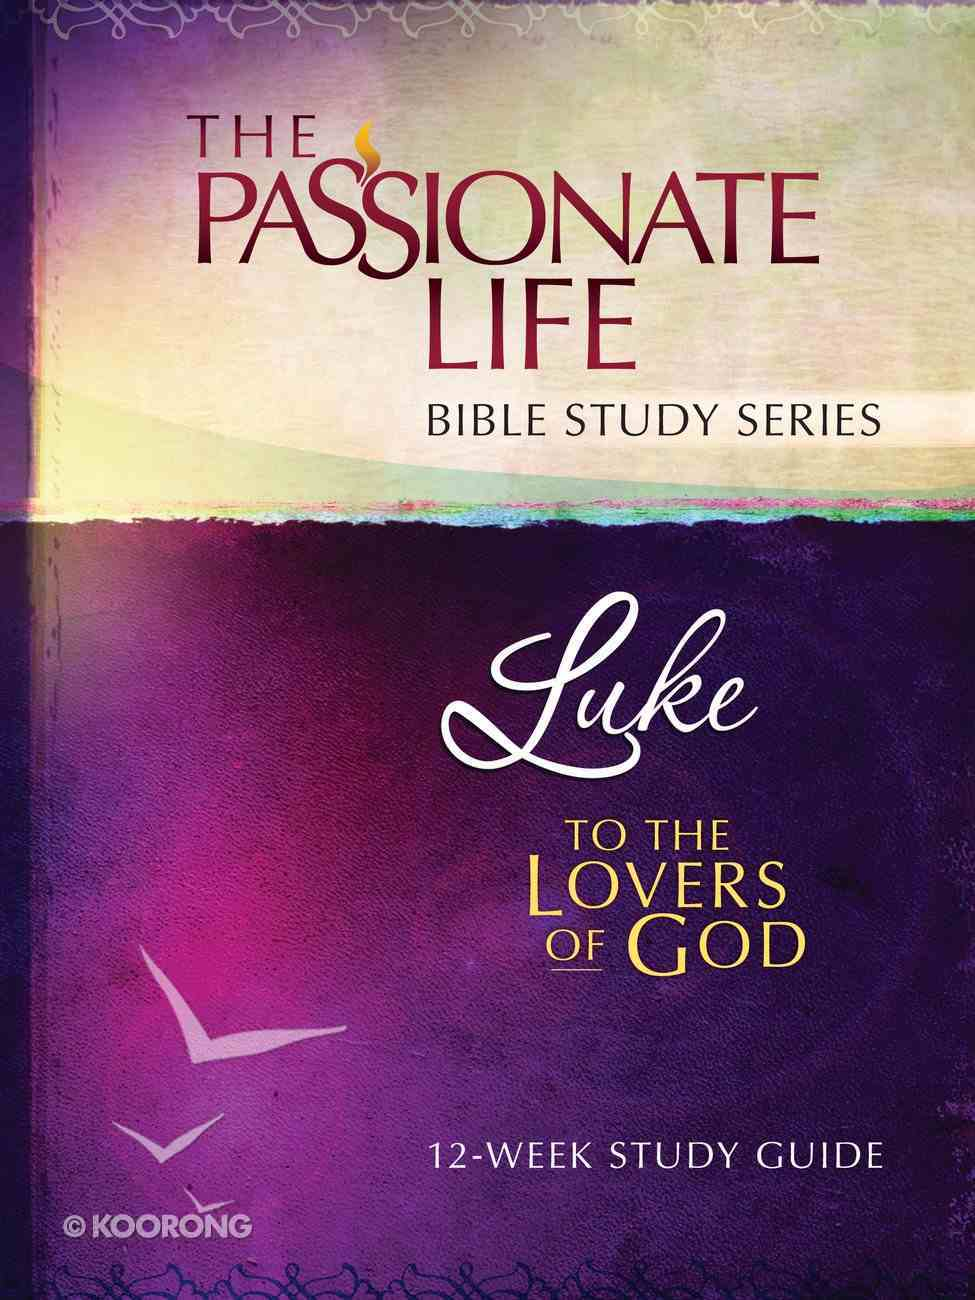 Luke - to the Lovers of God (The Passionate Life Bible Study Series) eBook